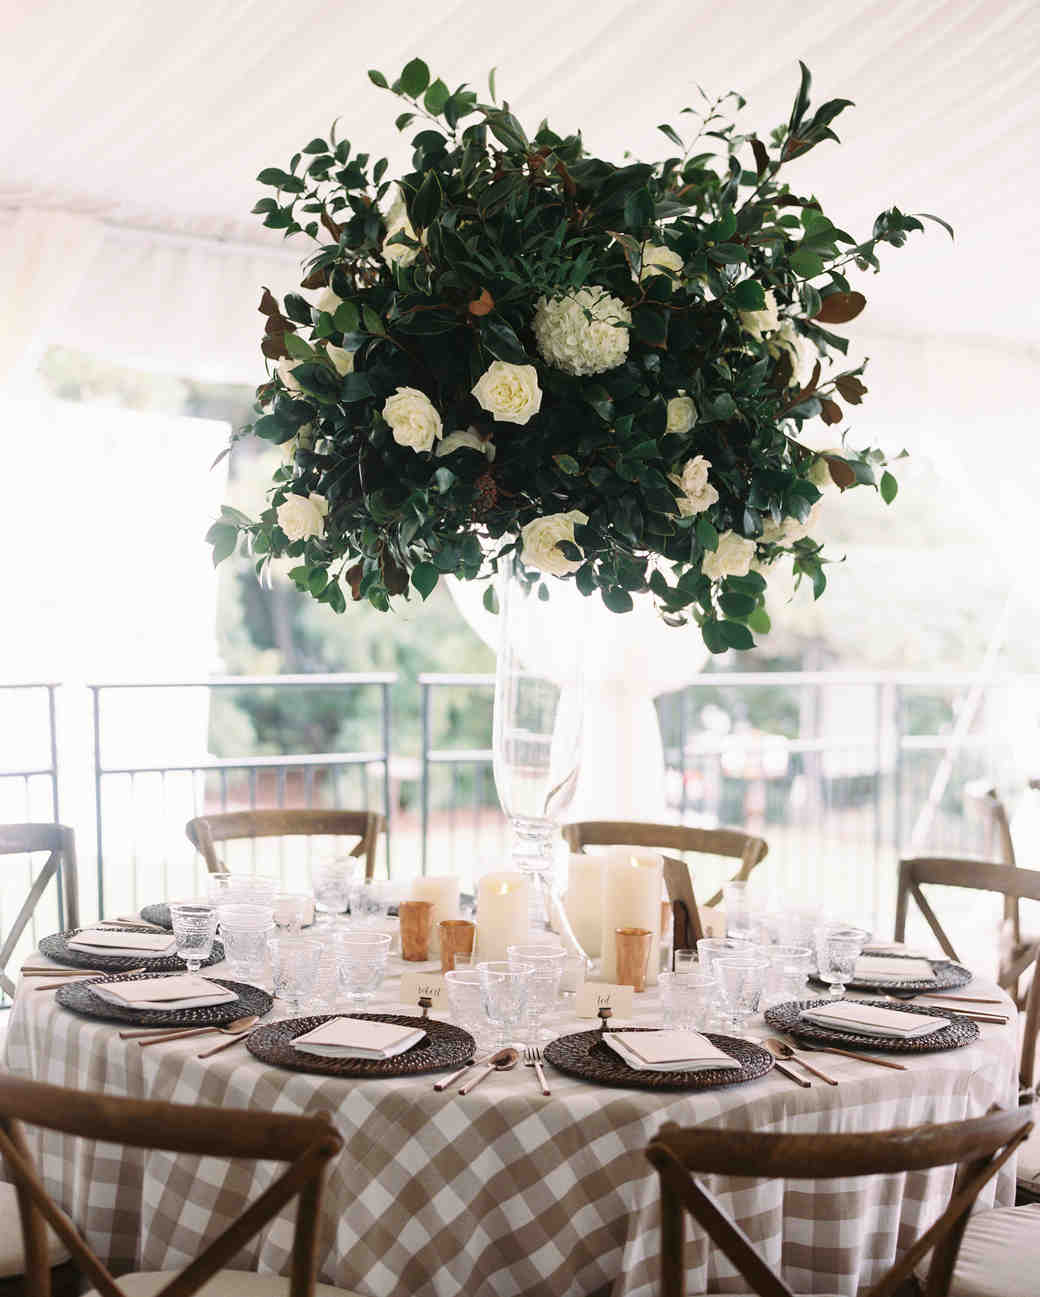 kendall nick wedding table